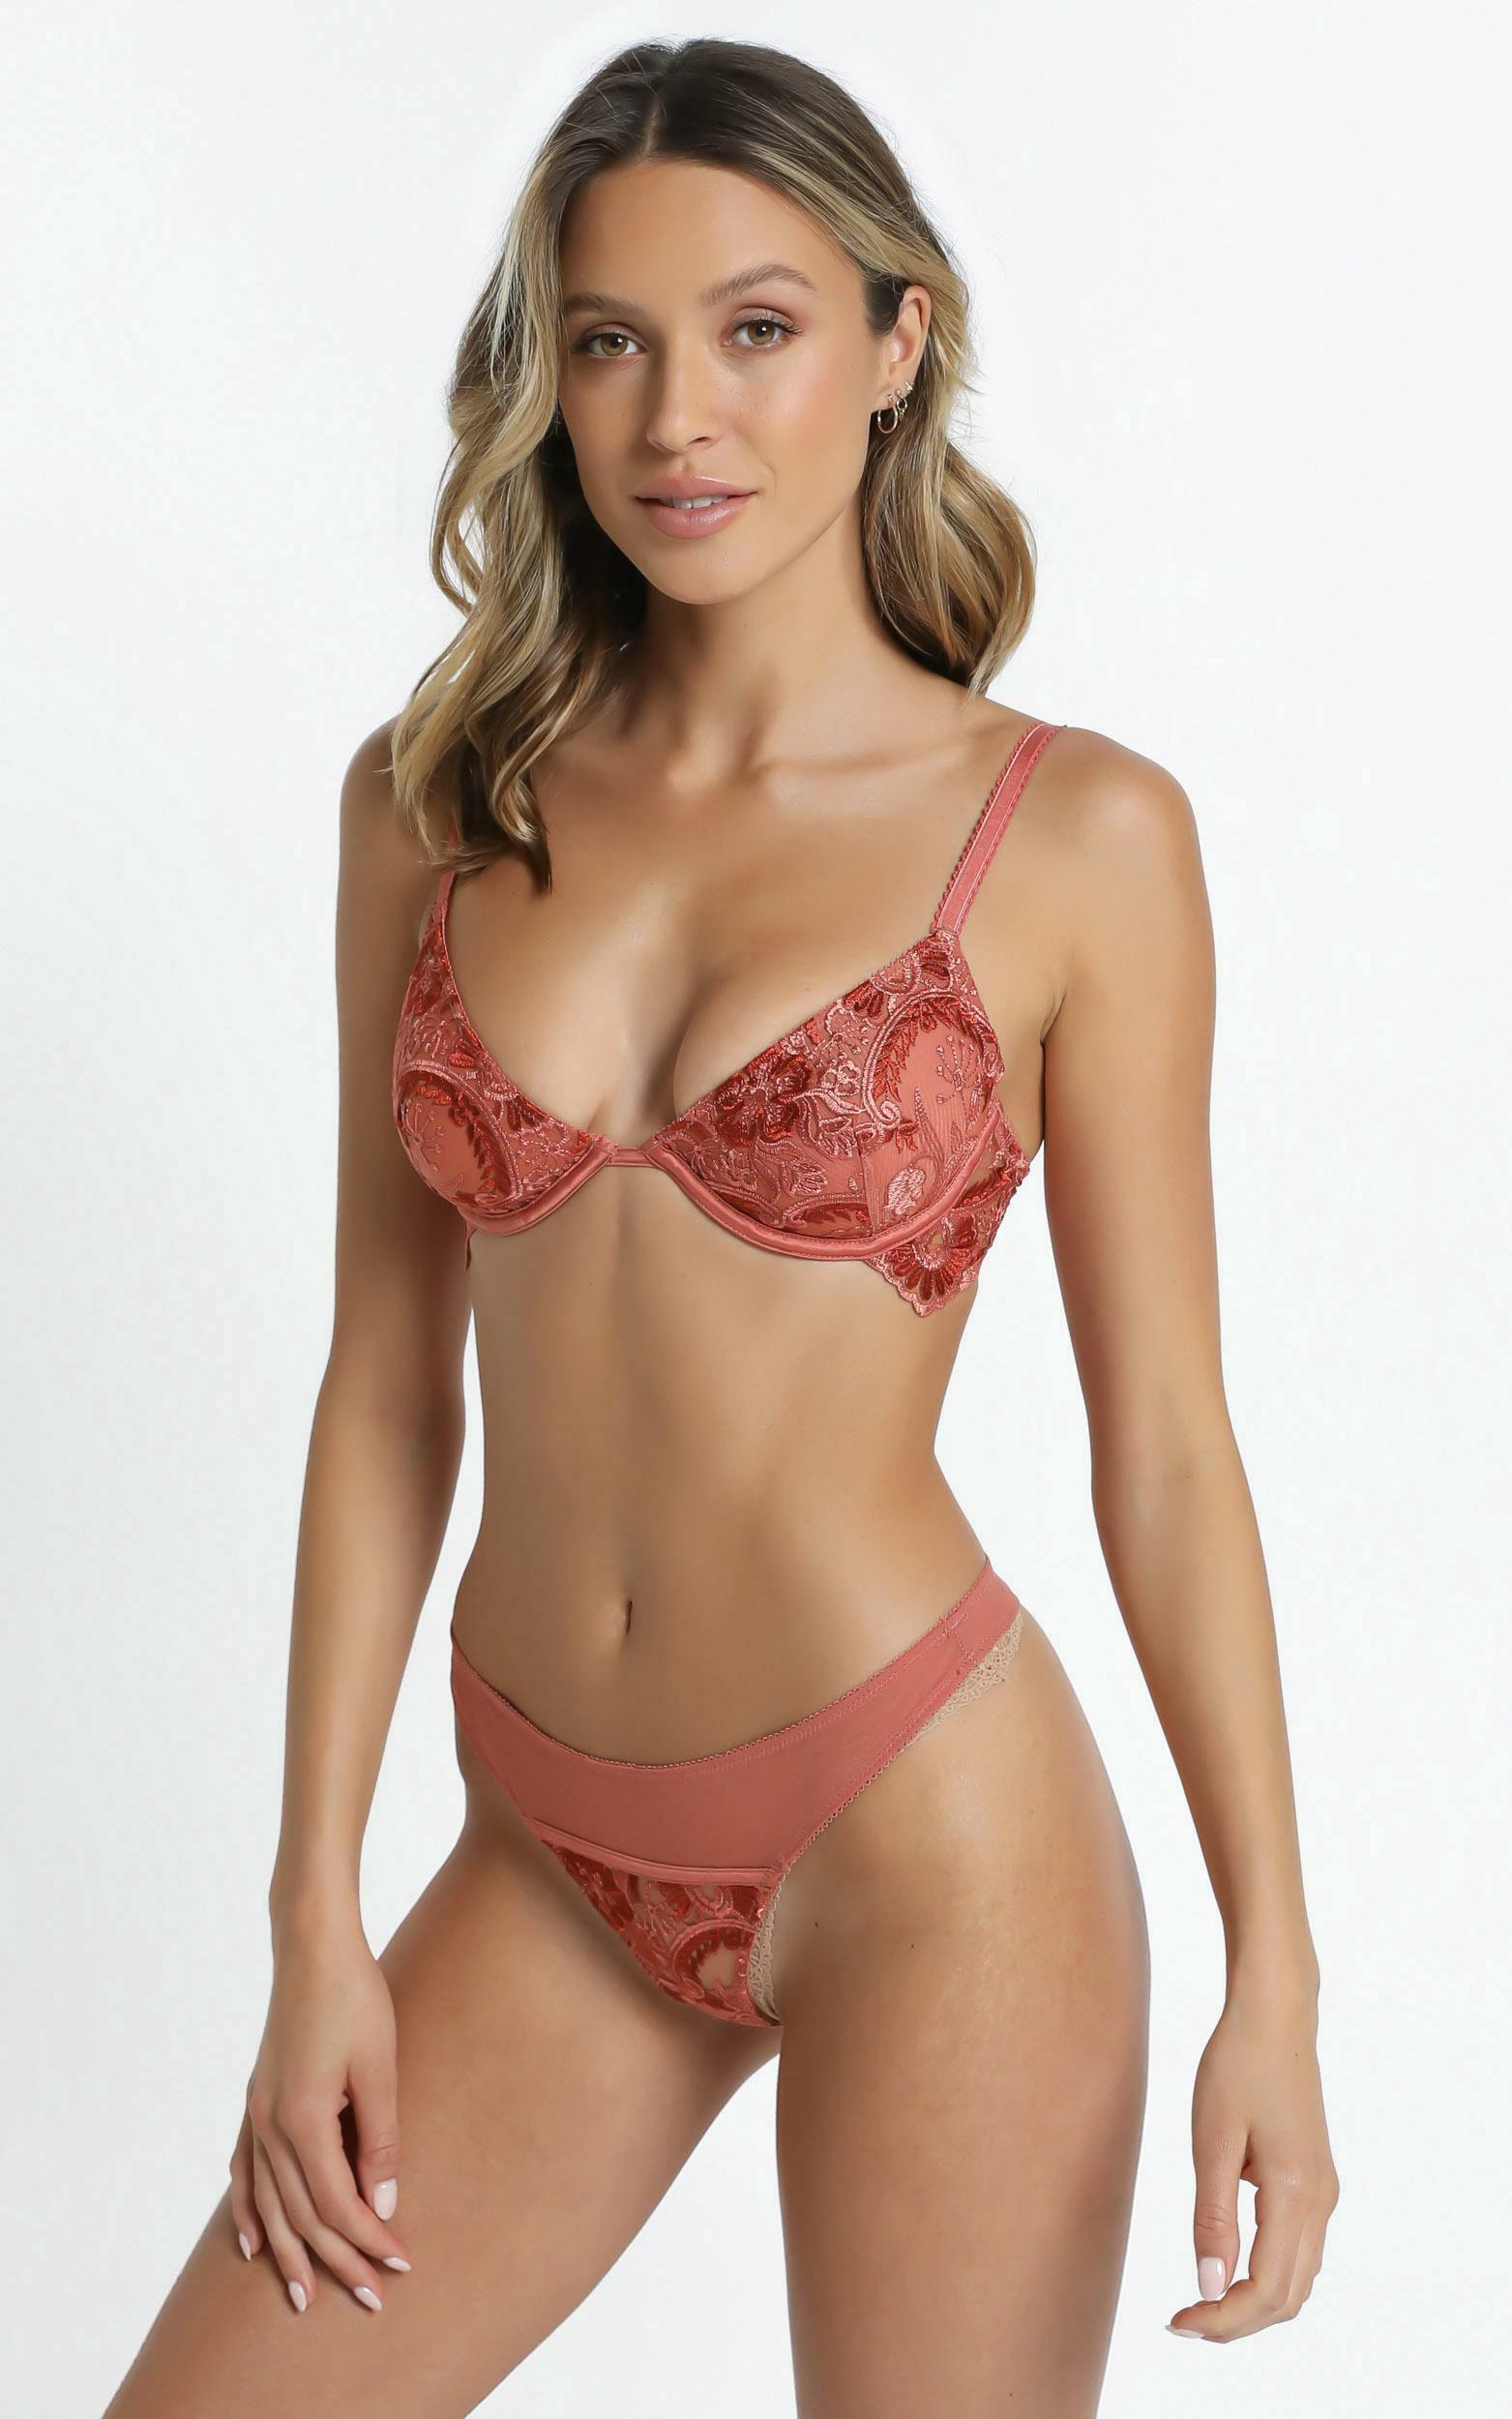 Kat The Label - Penelope Underwire Bra in Tangerine - XS, ORG2, hi-res image number null